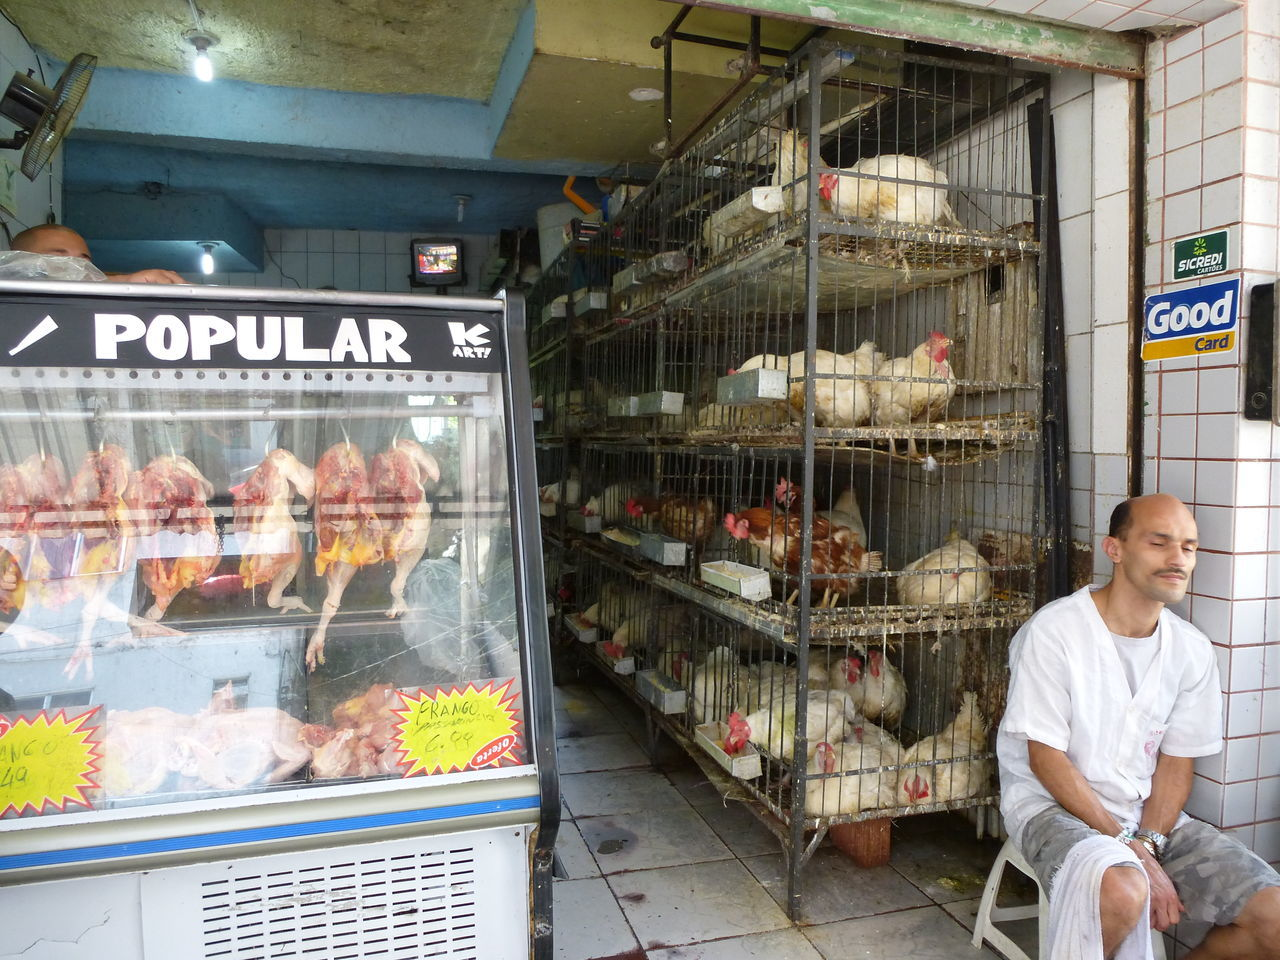 Business Butchery Chicken Chicken - Bird Chicken Shopping Favela Rocinha Life Is A Beach Live And Dead Meat! Meat! Meat! Occupation Poltry Store